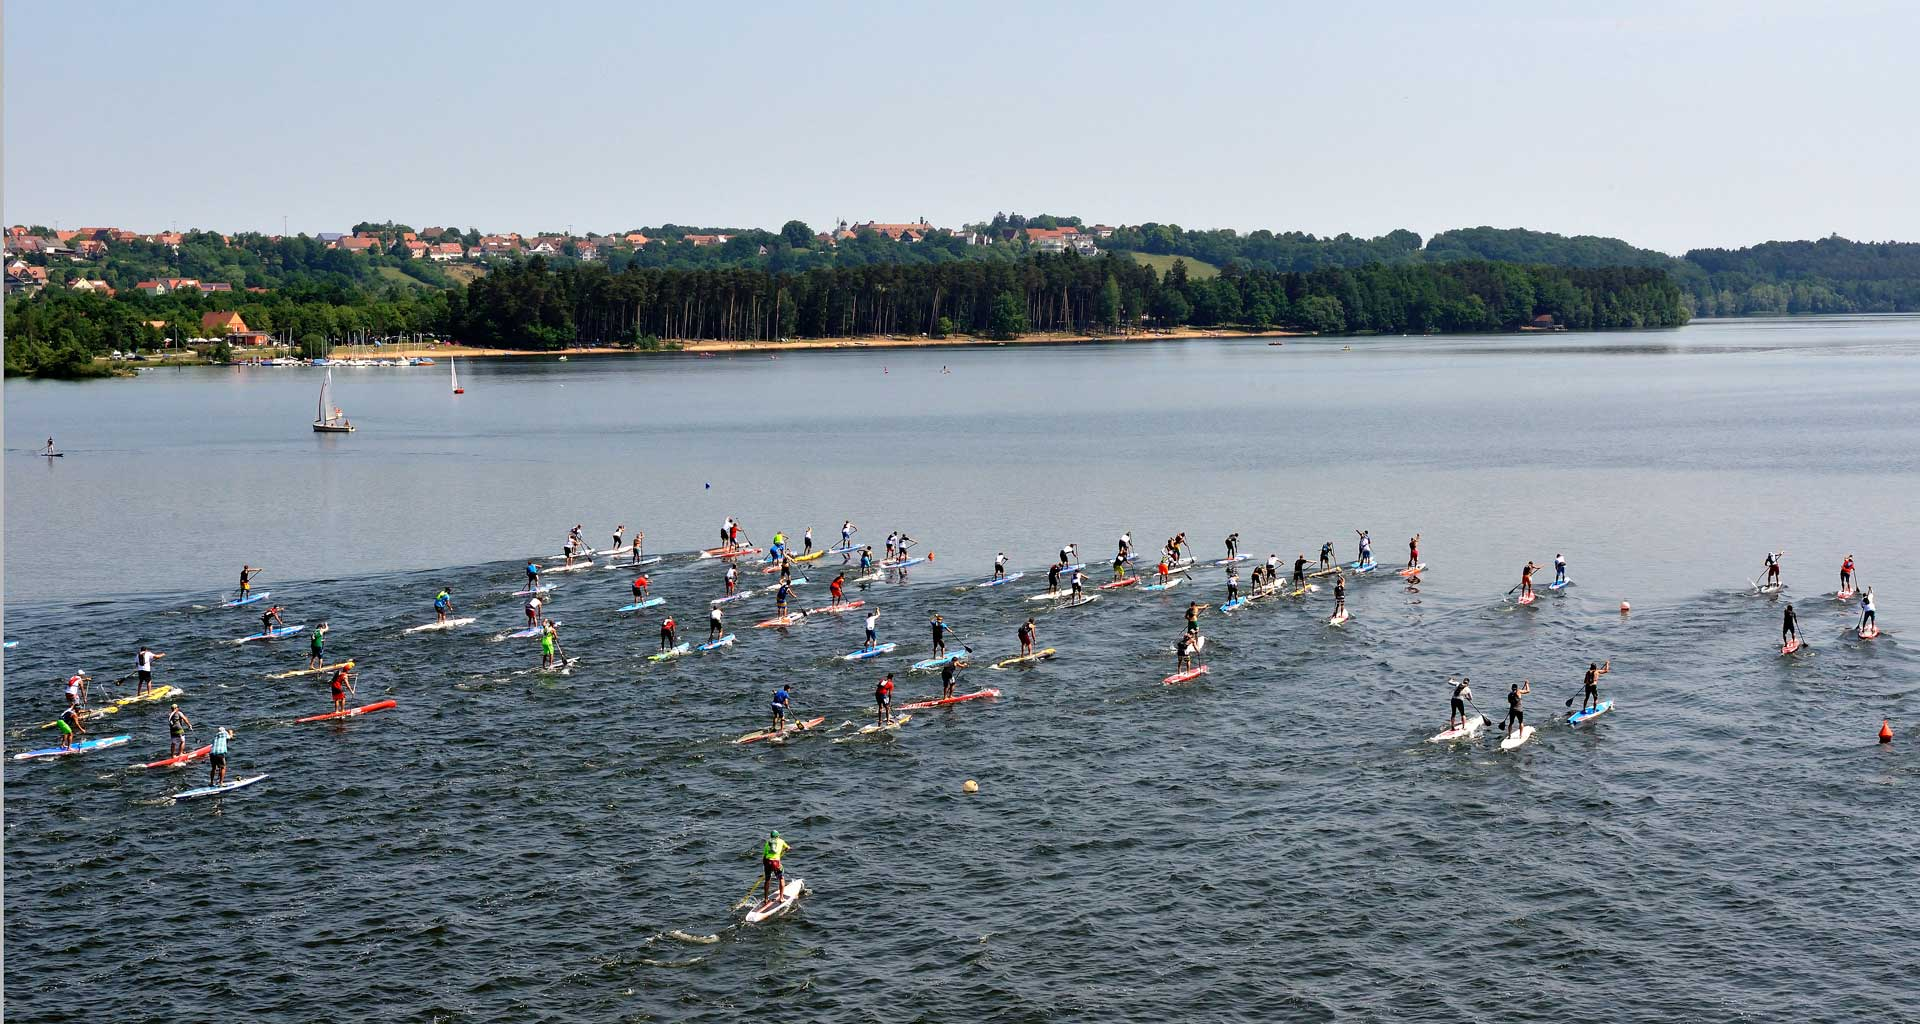 Lost Mills SUP Race - Wild East Dresden